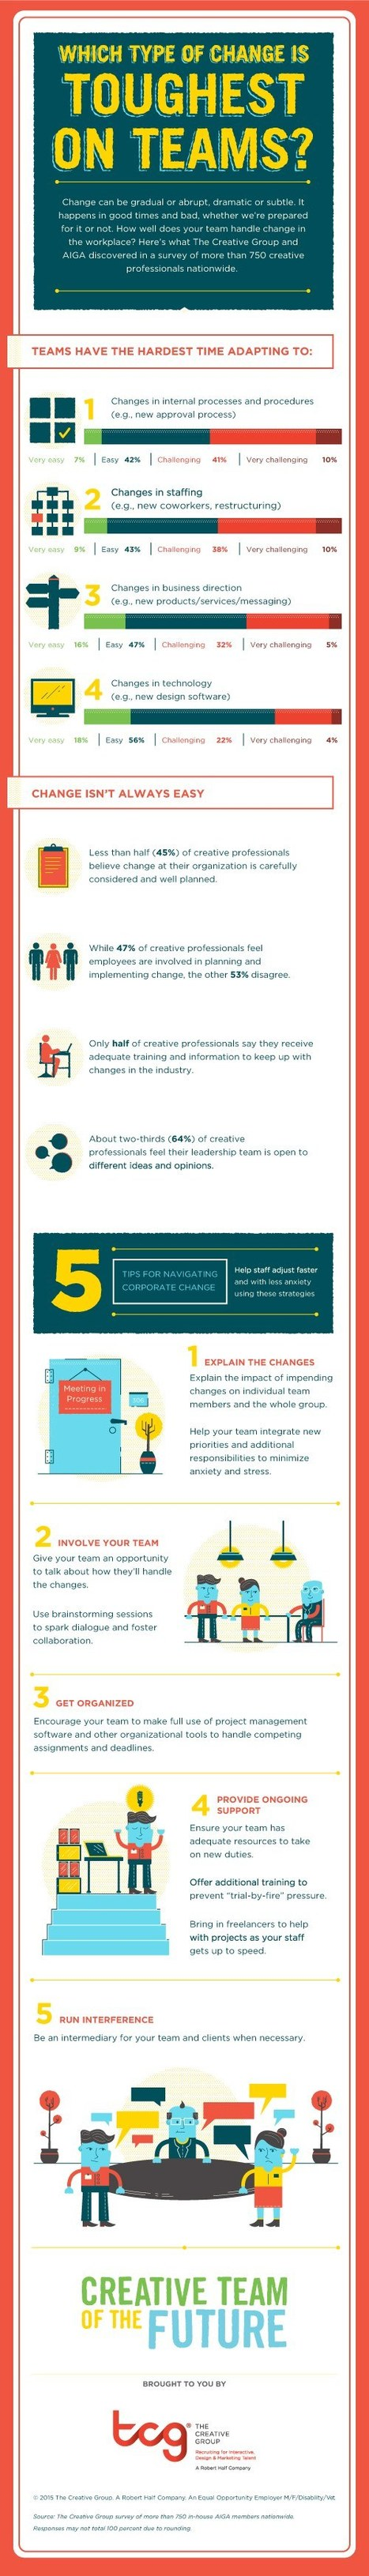 How Marketers Feel About Workplace Changes [Infographic] | New Customer & Employee Management | Scoop.it